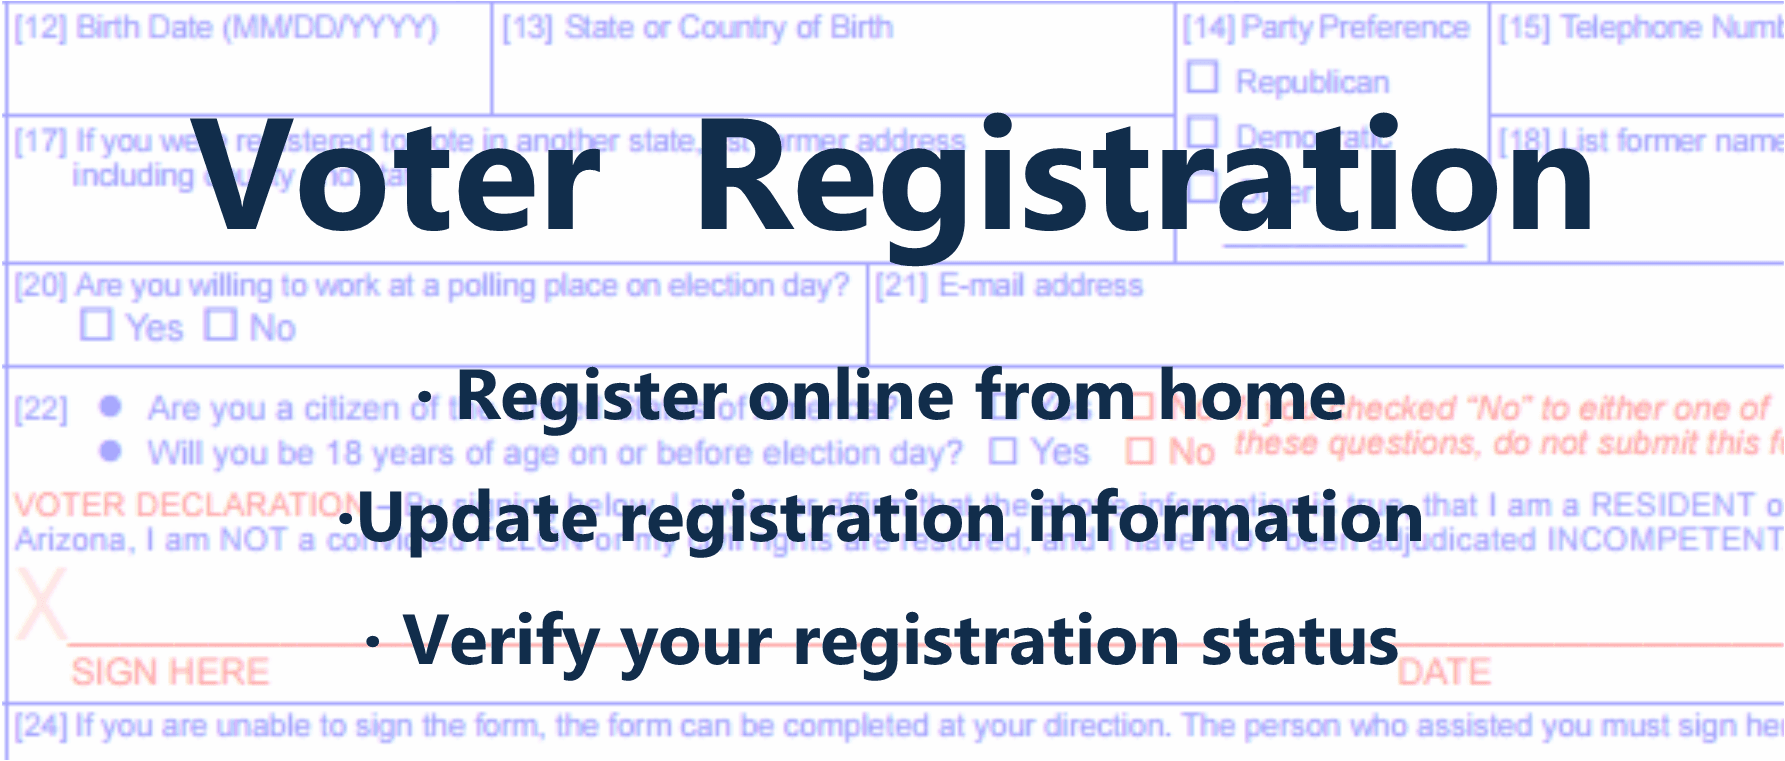 Voter Registration Information